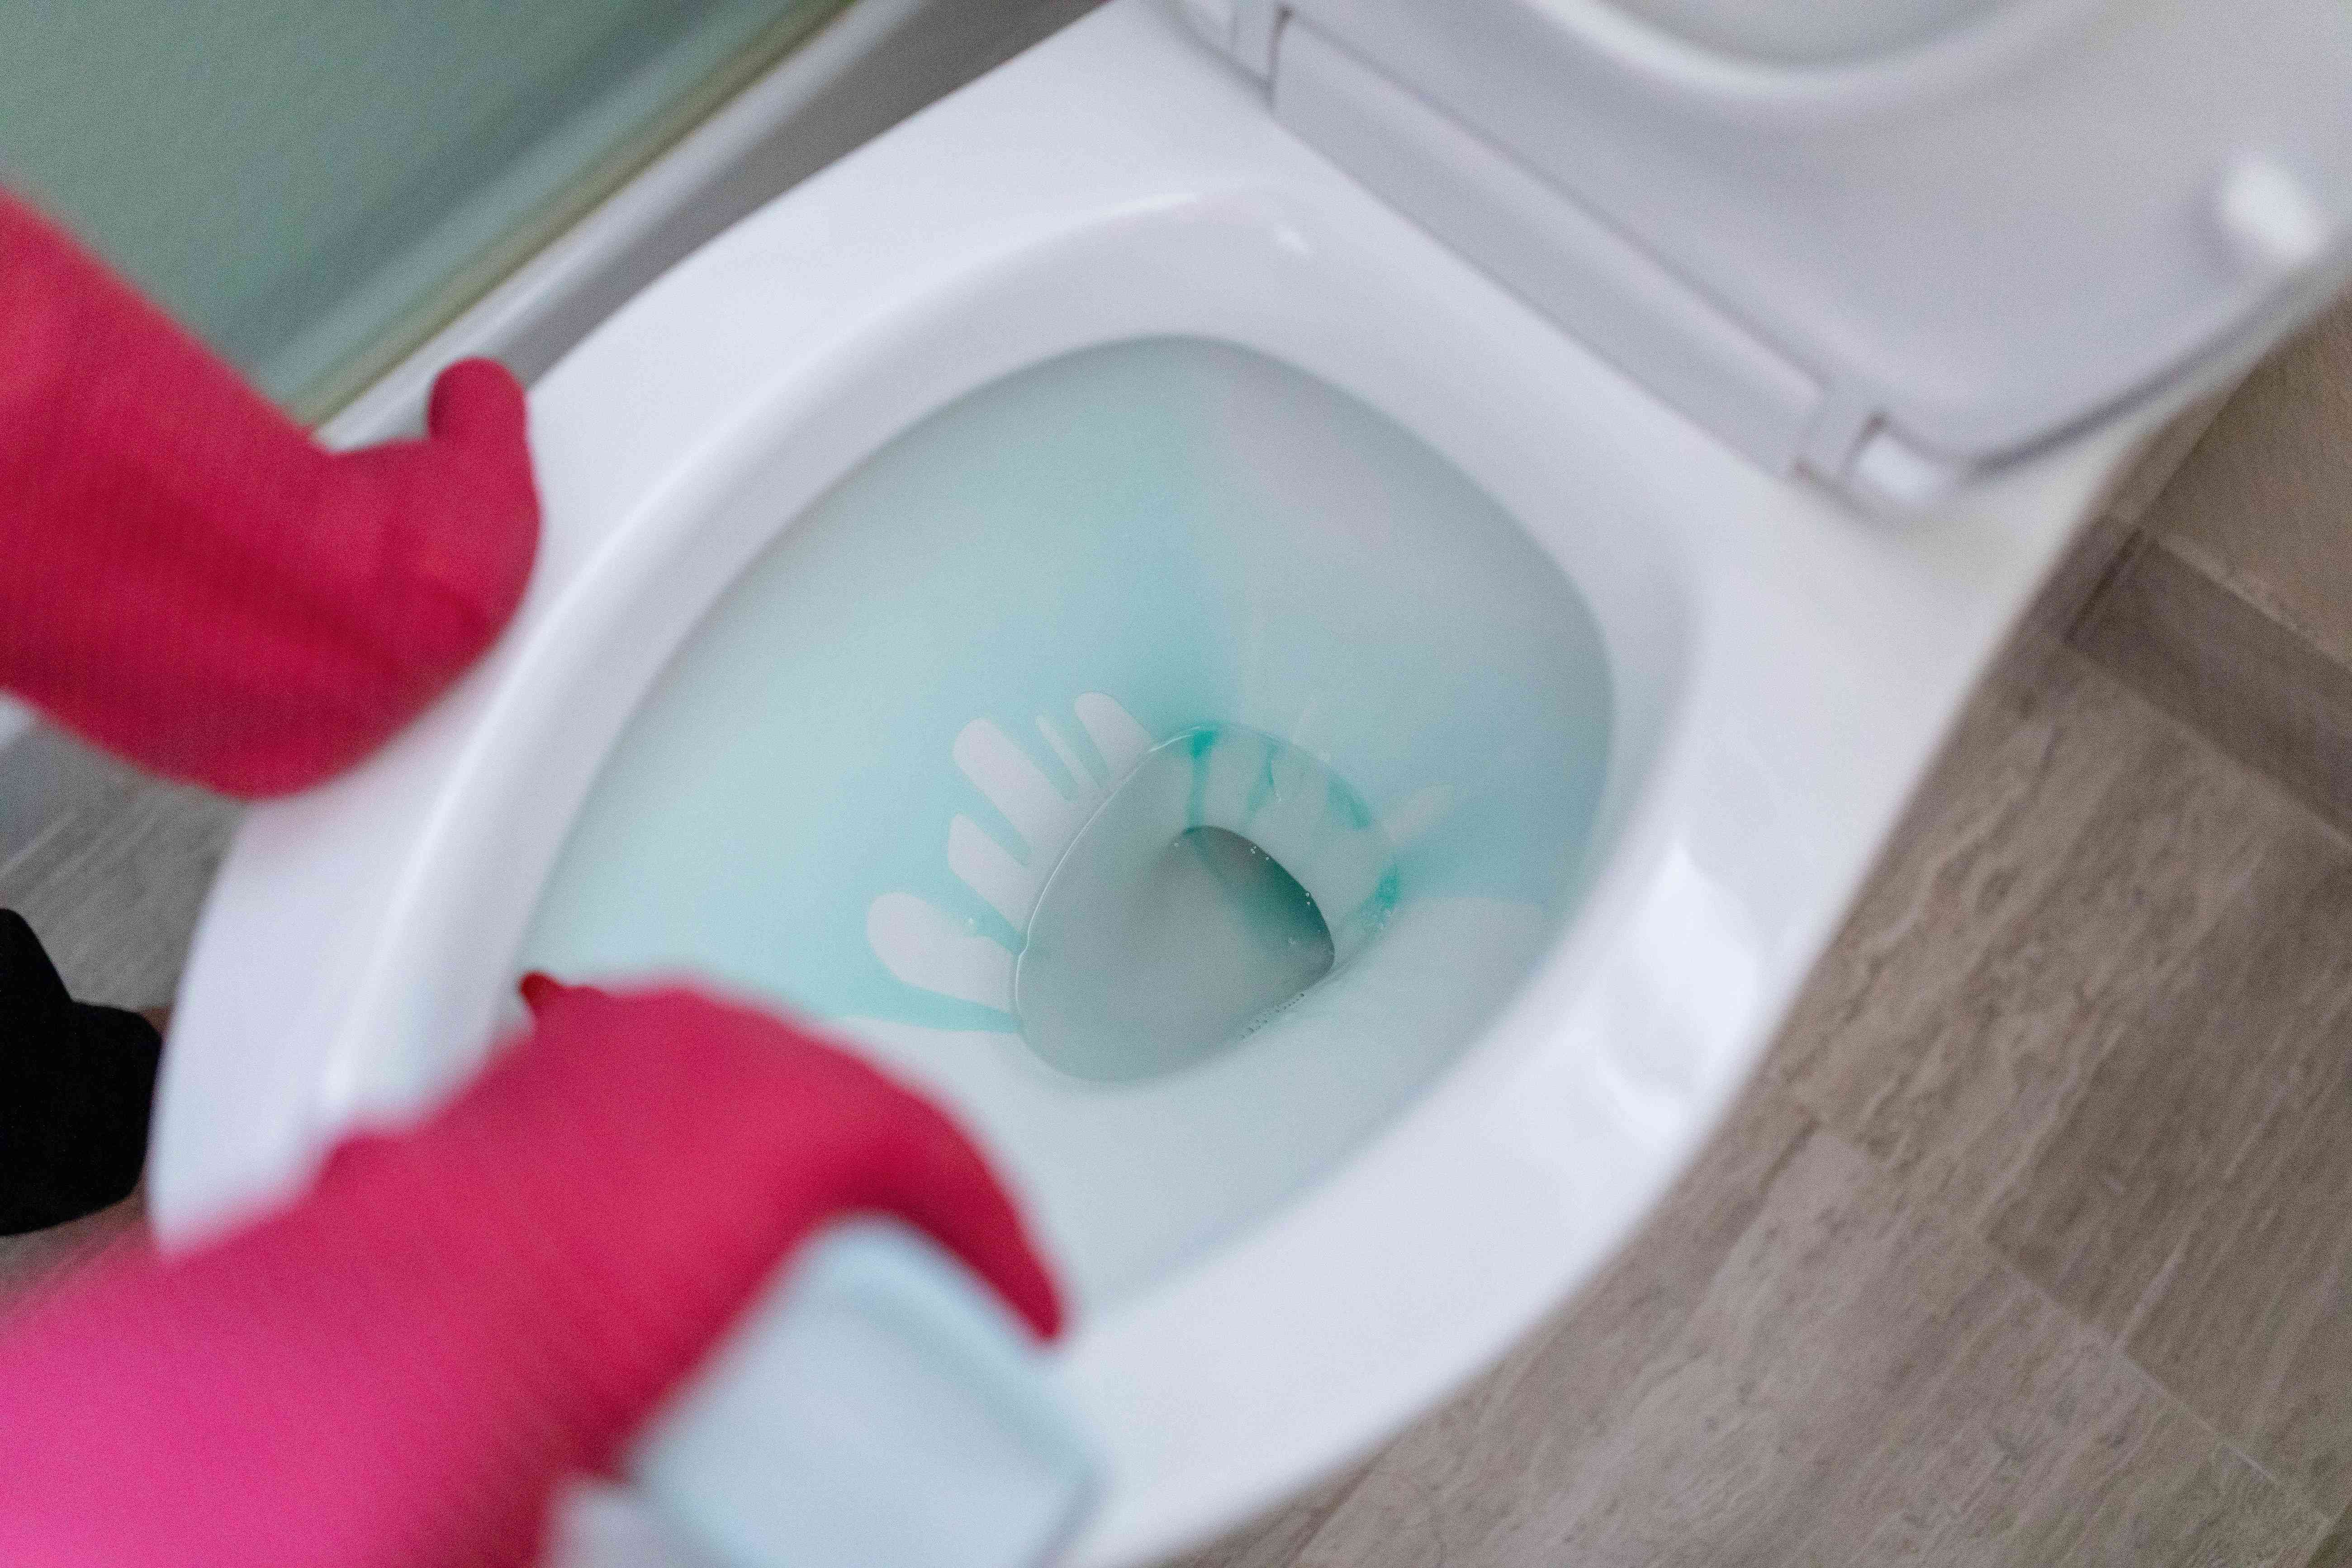 Add cleaning solution to the toilet bowl before flushing